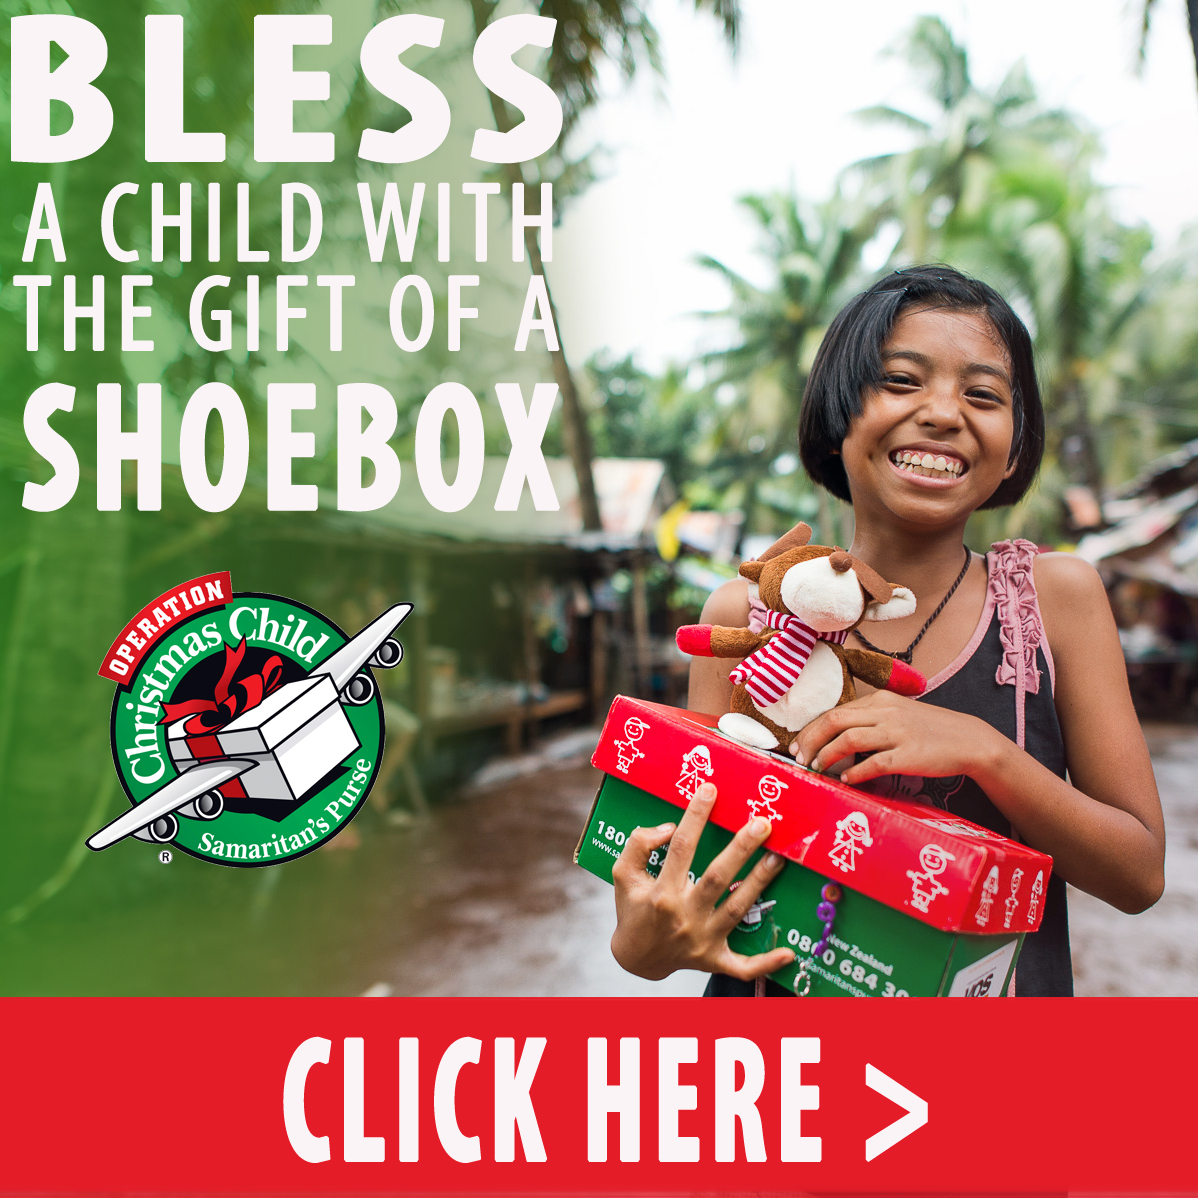 It's time for Operation Christmas Child again! Pick up your empty shoebox(es) from The Gathering Place or the Fellowship Hall beginning 11/6 and return them to the Conference Room by Sun. 11/20. For examples of how to fill your box or to register your box so you can follow its path, visit foresthills.org/operationchristmaschild